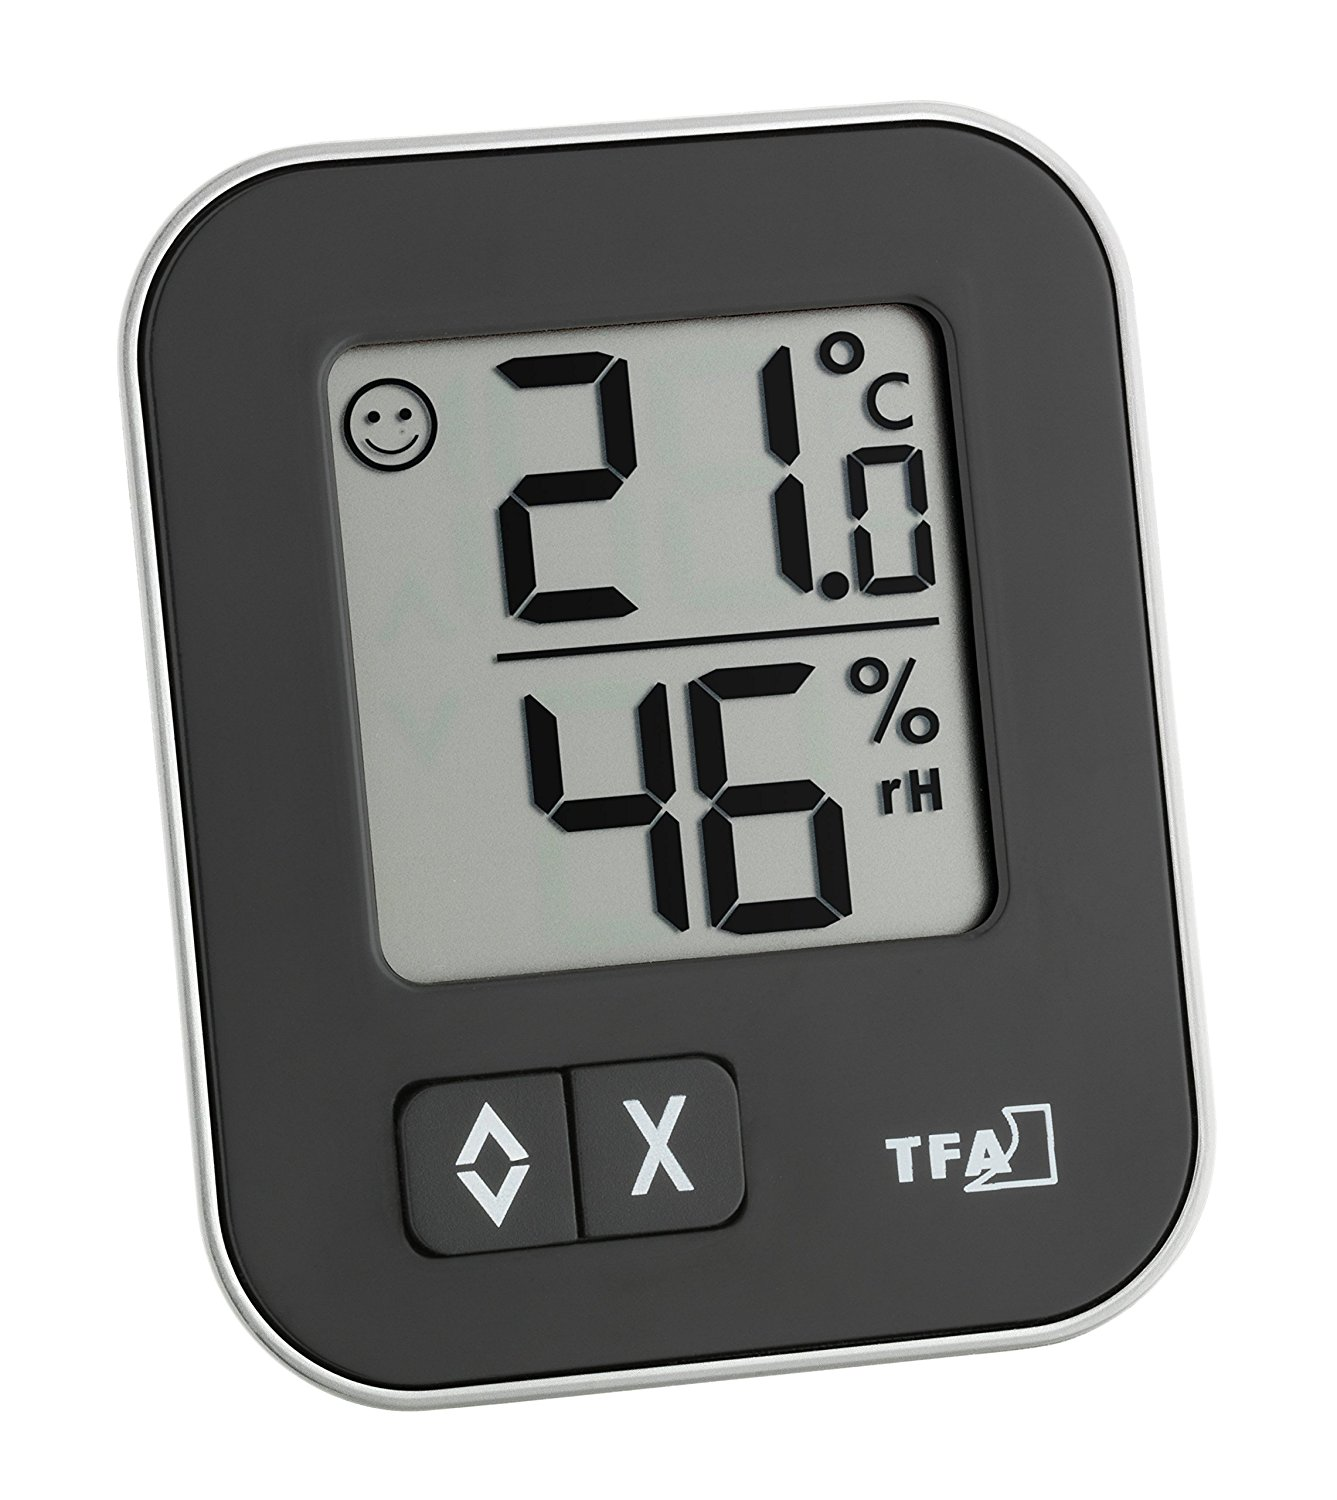 TFA Digitale Thermo- Hygrometer Moxx